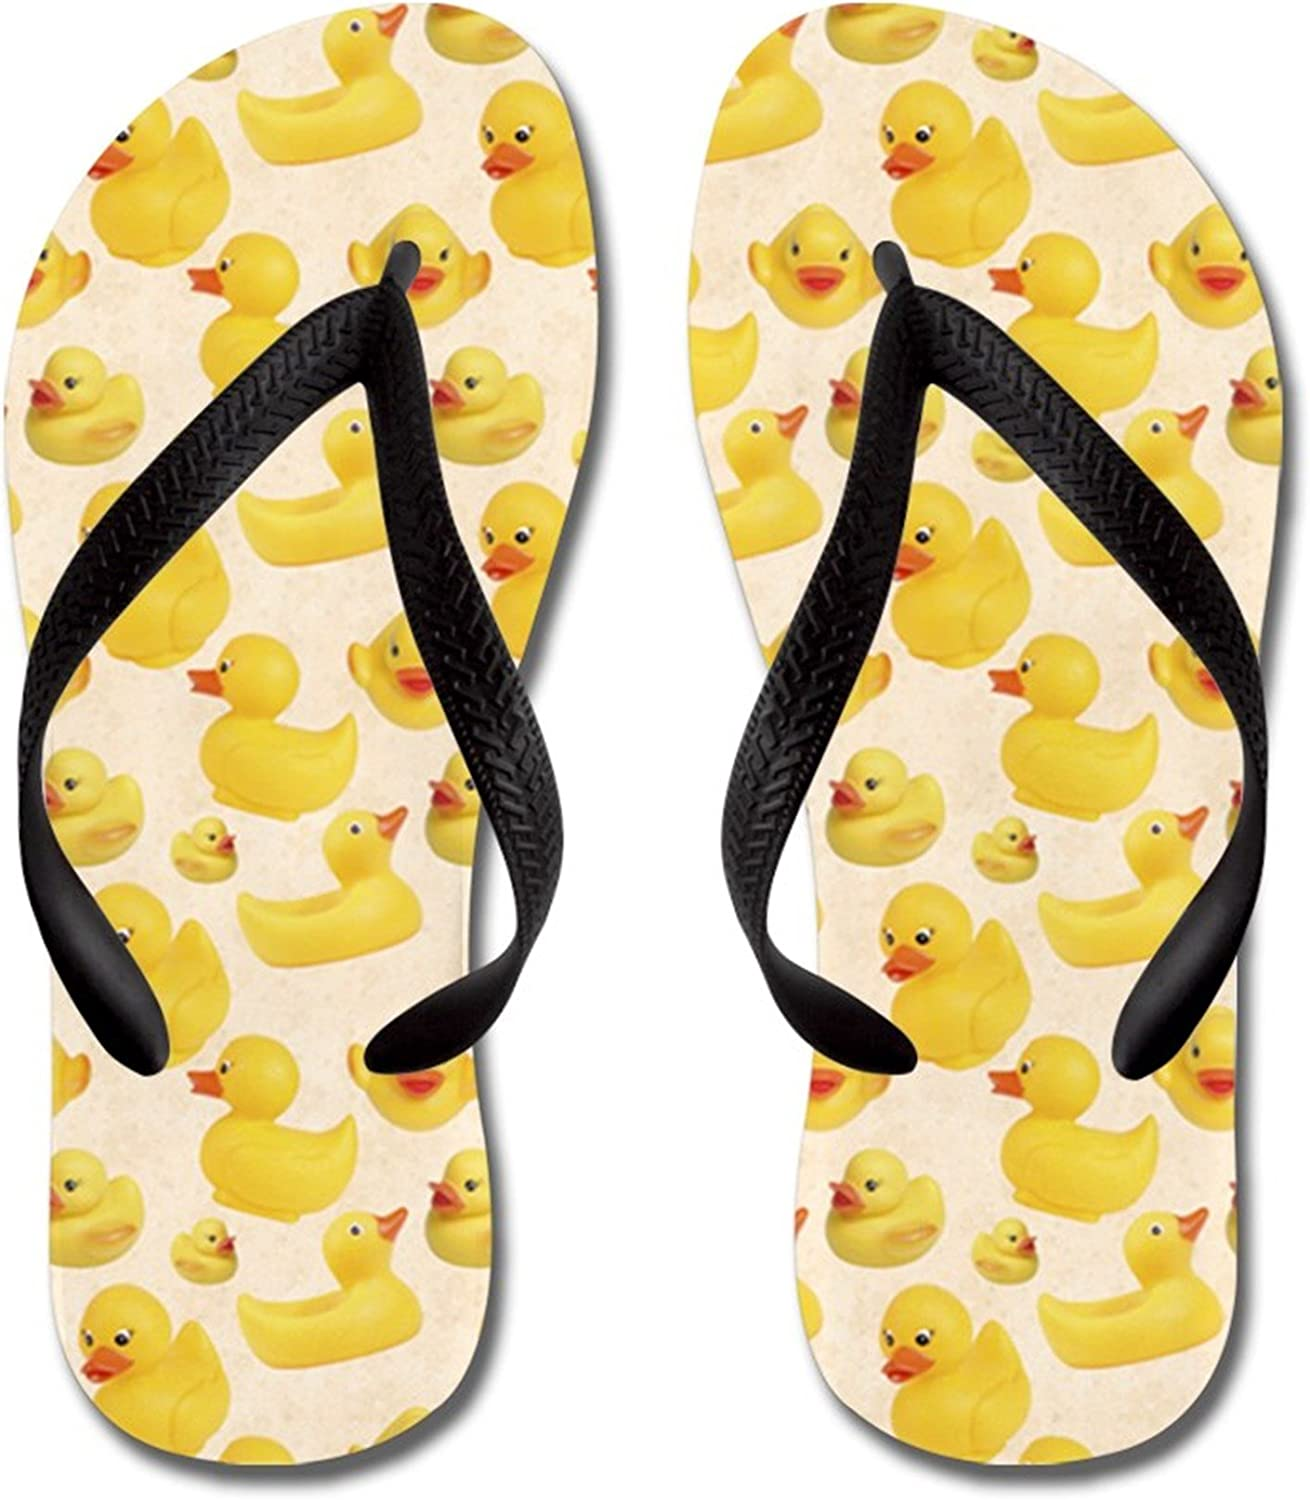 Inventory cleanup selling sale Lplpol Rubber Ducks Flip Flops for and Unisex Adult Kids Beach S Soldering